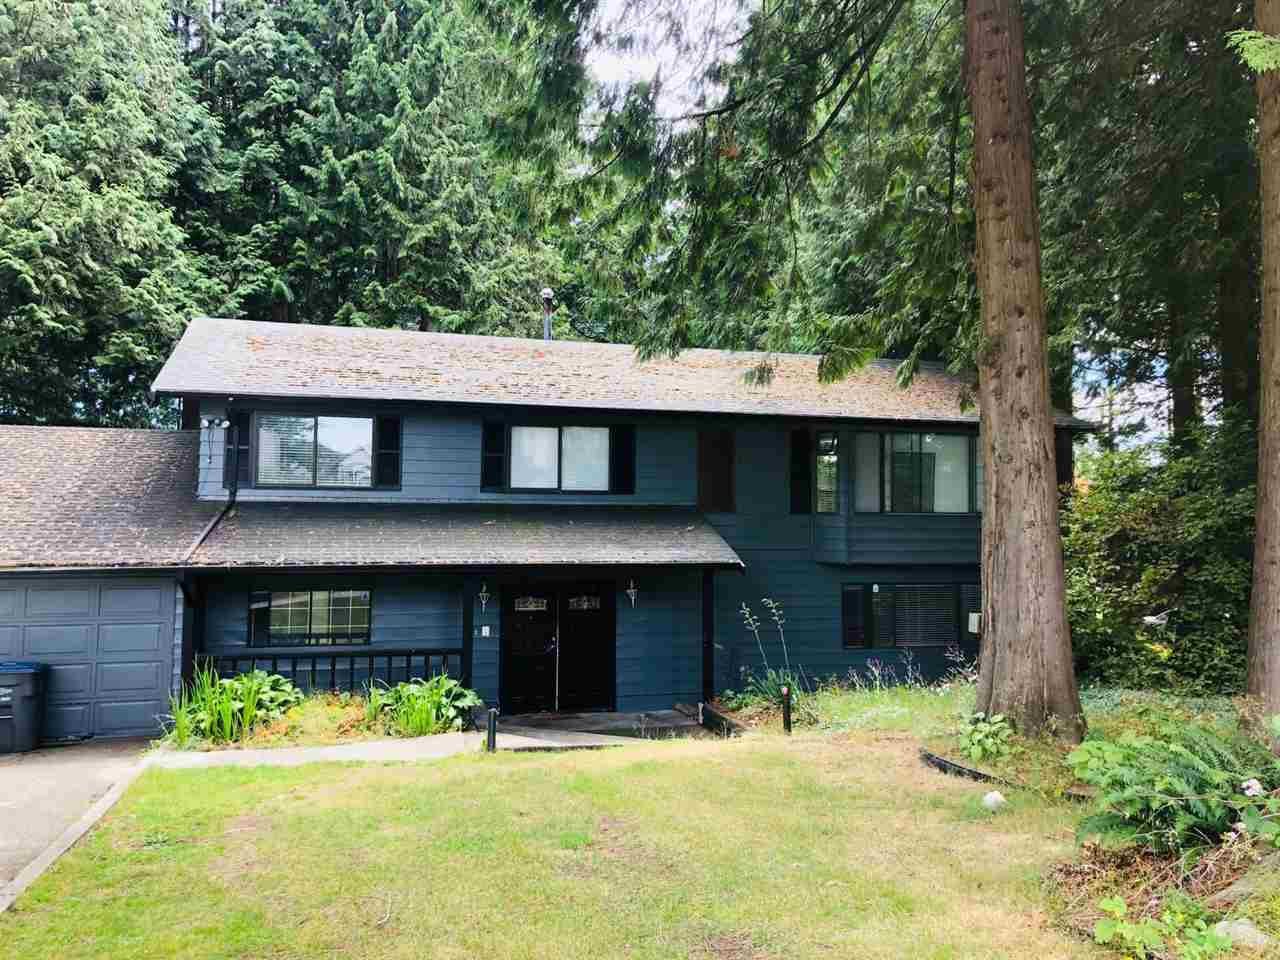 Main Photo: 12750 60 Avenue in Surrey: Panorama Ridge House for sale : MLS®# R2384017